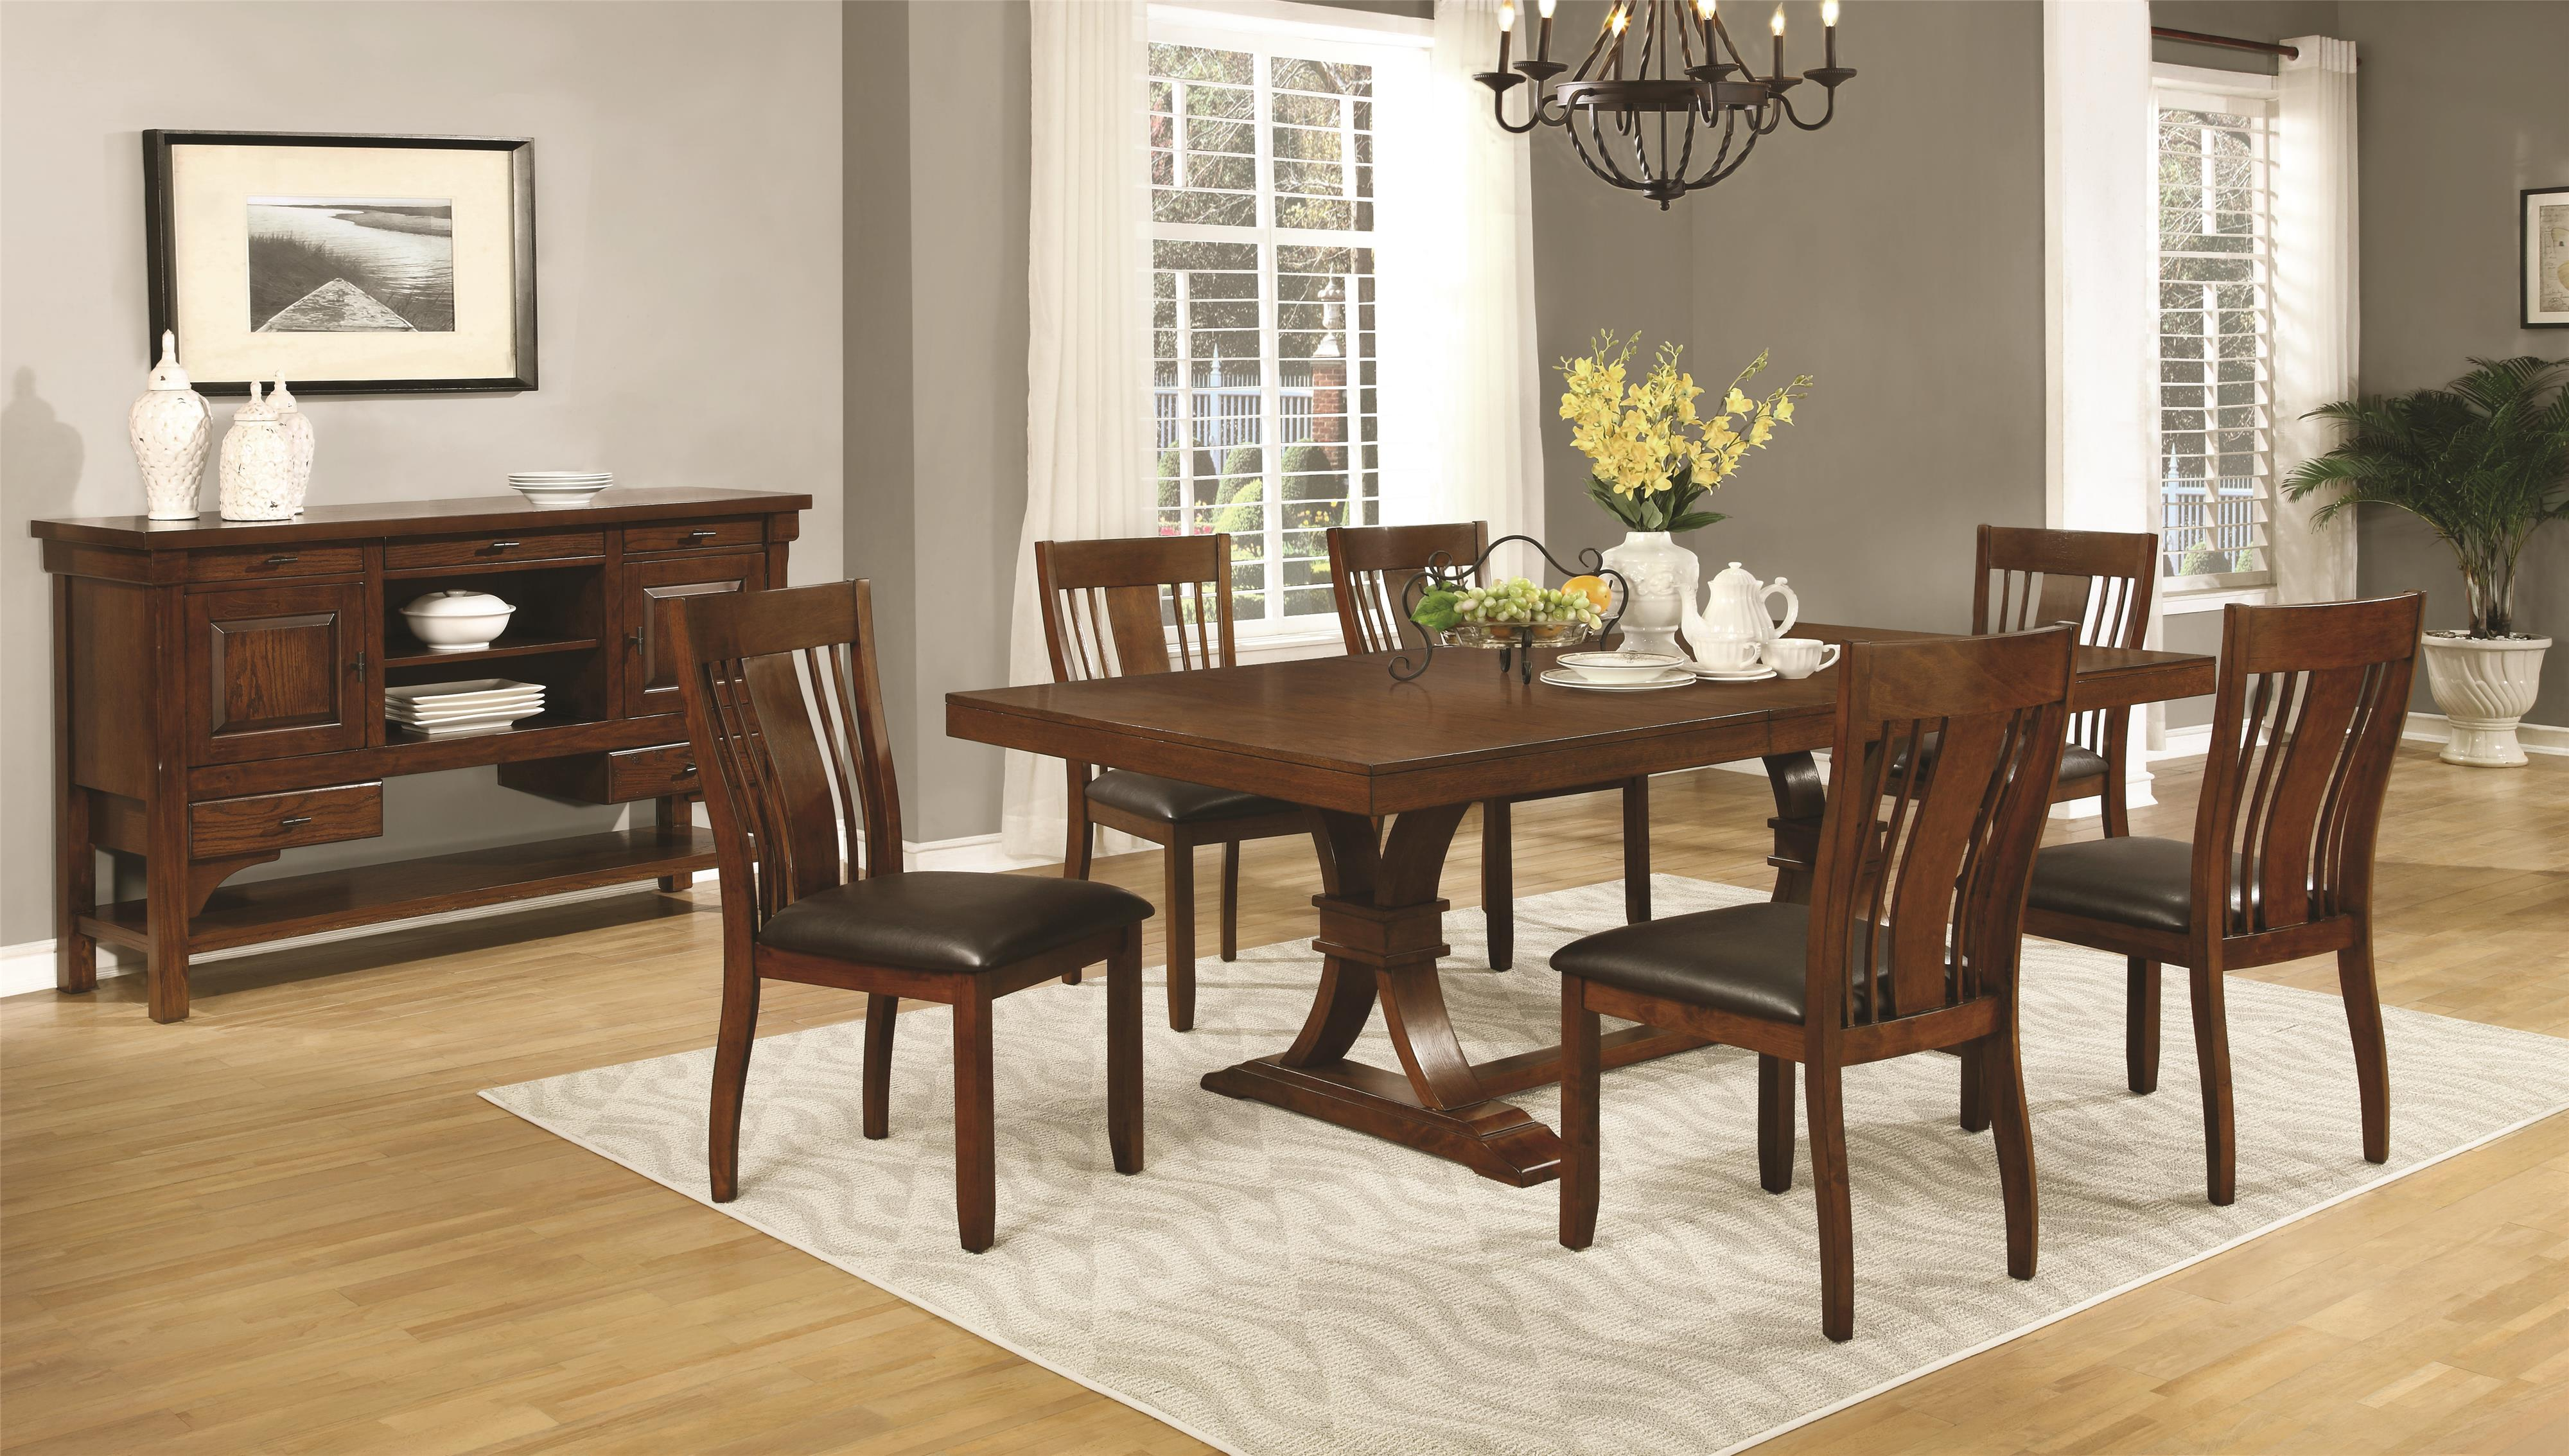 Coaster Abrams Casual Dining Room Group - Item Number: 10648 Dining Room Group 1